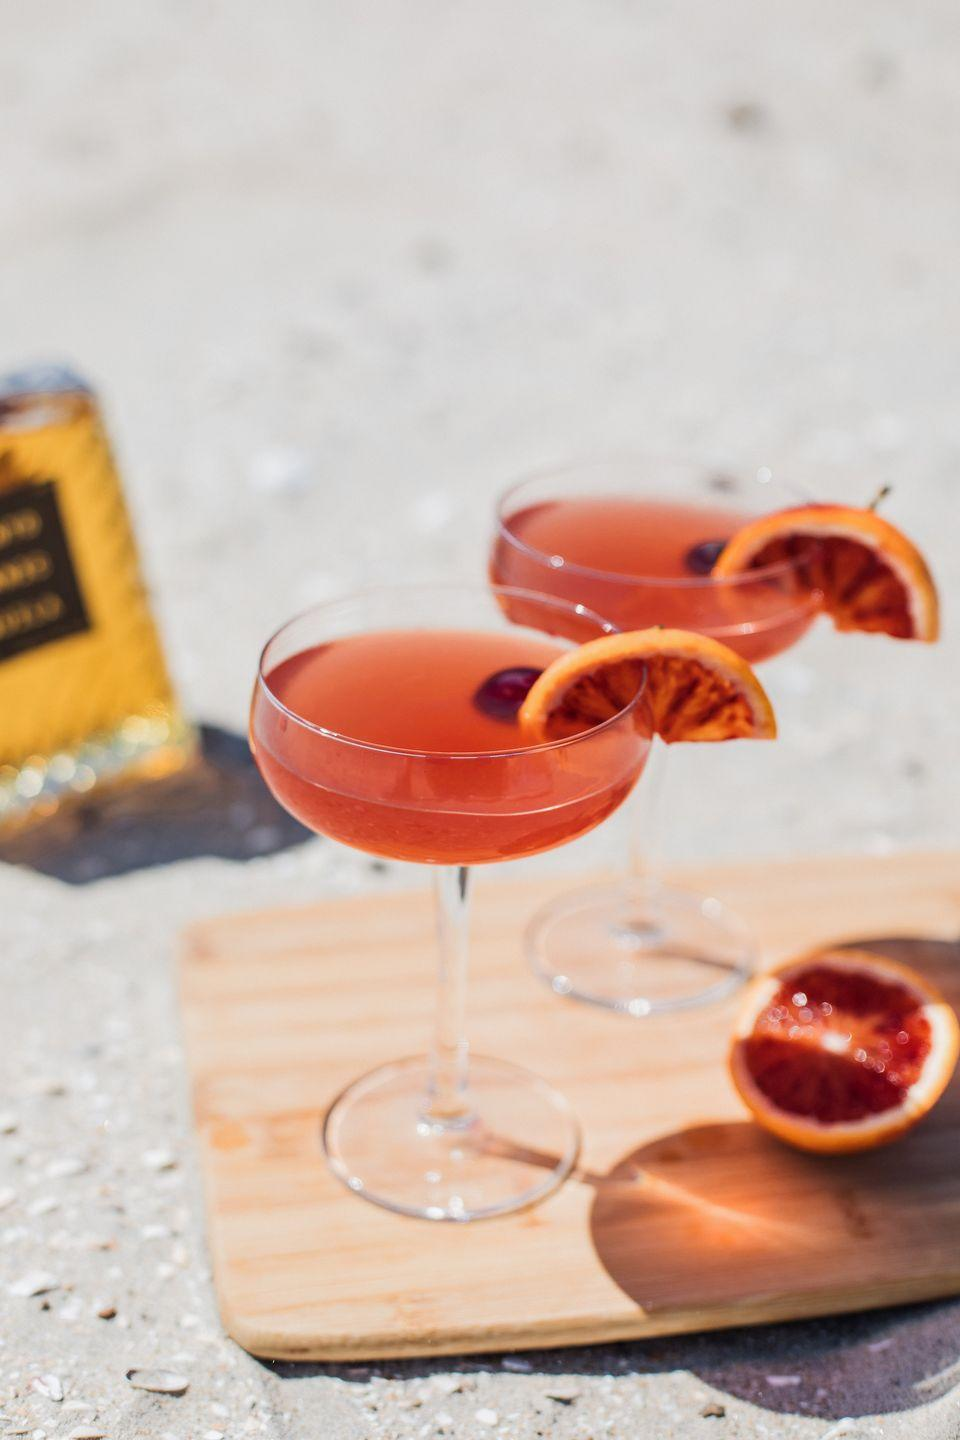 <p>Perfect for golden hour and beyond, this simple cocktail is perfect for any occasion—and feels festive enough to serve in winter. </p><p><strong>Ingredients:</strong></p><p>2 ounces Solento Añejo</p><p>2 ounces blood orange juice</p><p>ice</p><p>sparkling mineral water</p><p> blood orange slices and Luxardo cherries, for garnish</p><p><strong>Directions:</strong></p><p>Combine tequila, blood orange juice, and ice in a cocktail shaker and shake, Serve into a coupe glass, top with sparkling mineral water, and garnish with a blood orange slice and Luxardo cherry. </p>